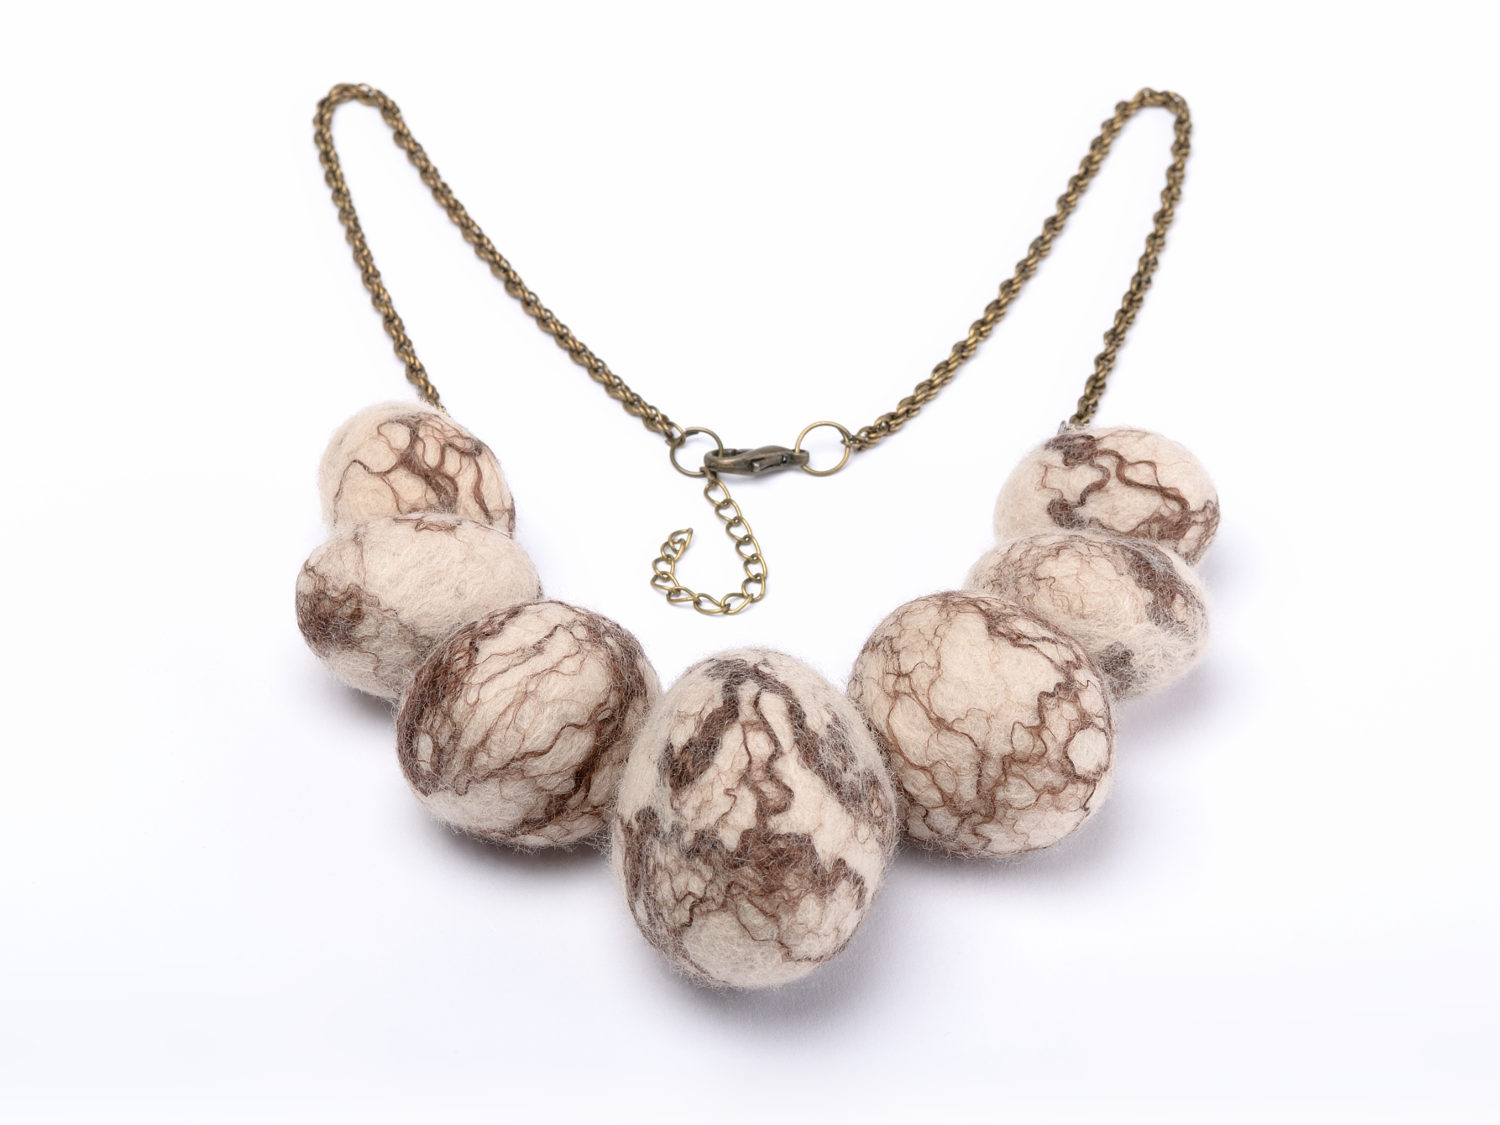 stones with necklace wool natural felt stone product